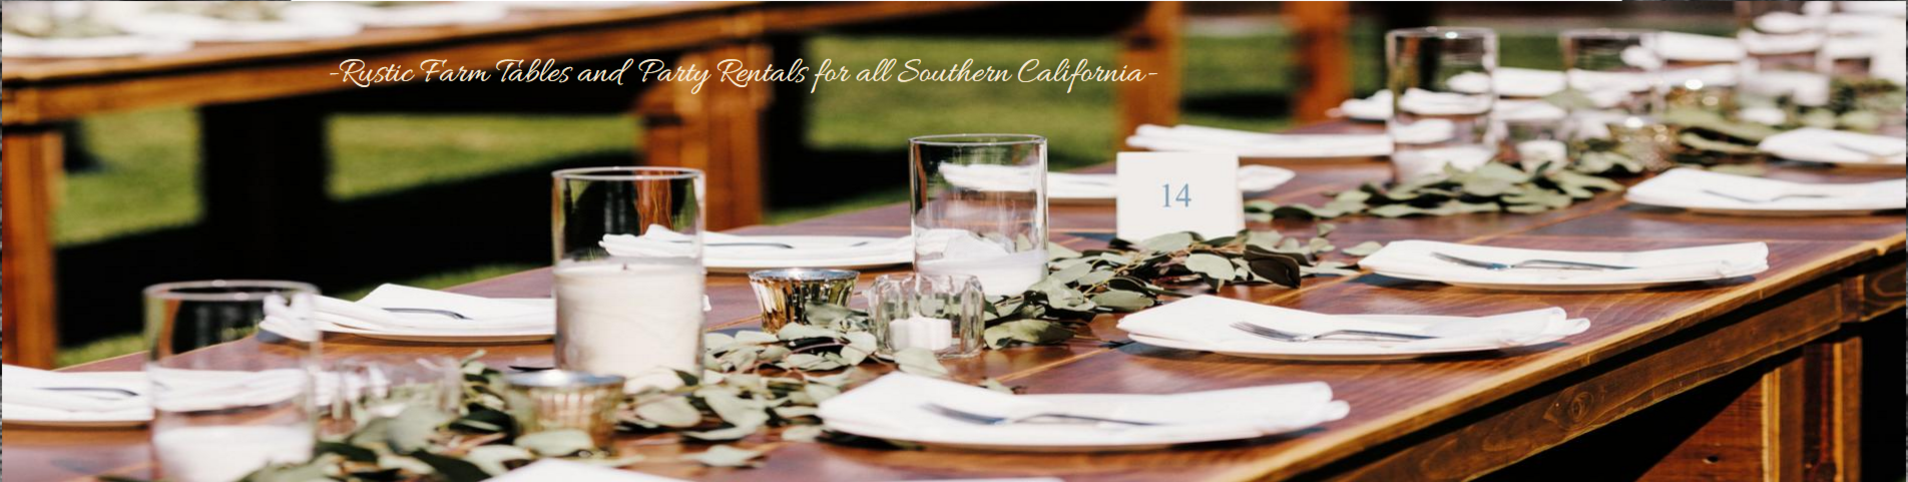 Rustic farm tables for all Southern California and Orange County weddings